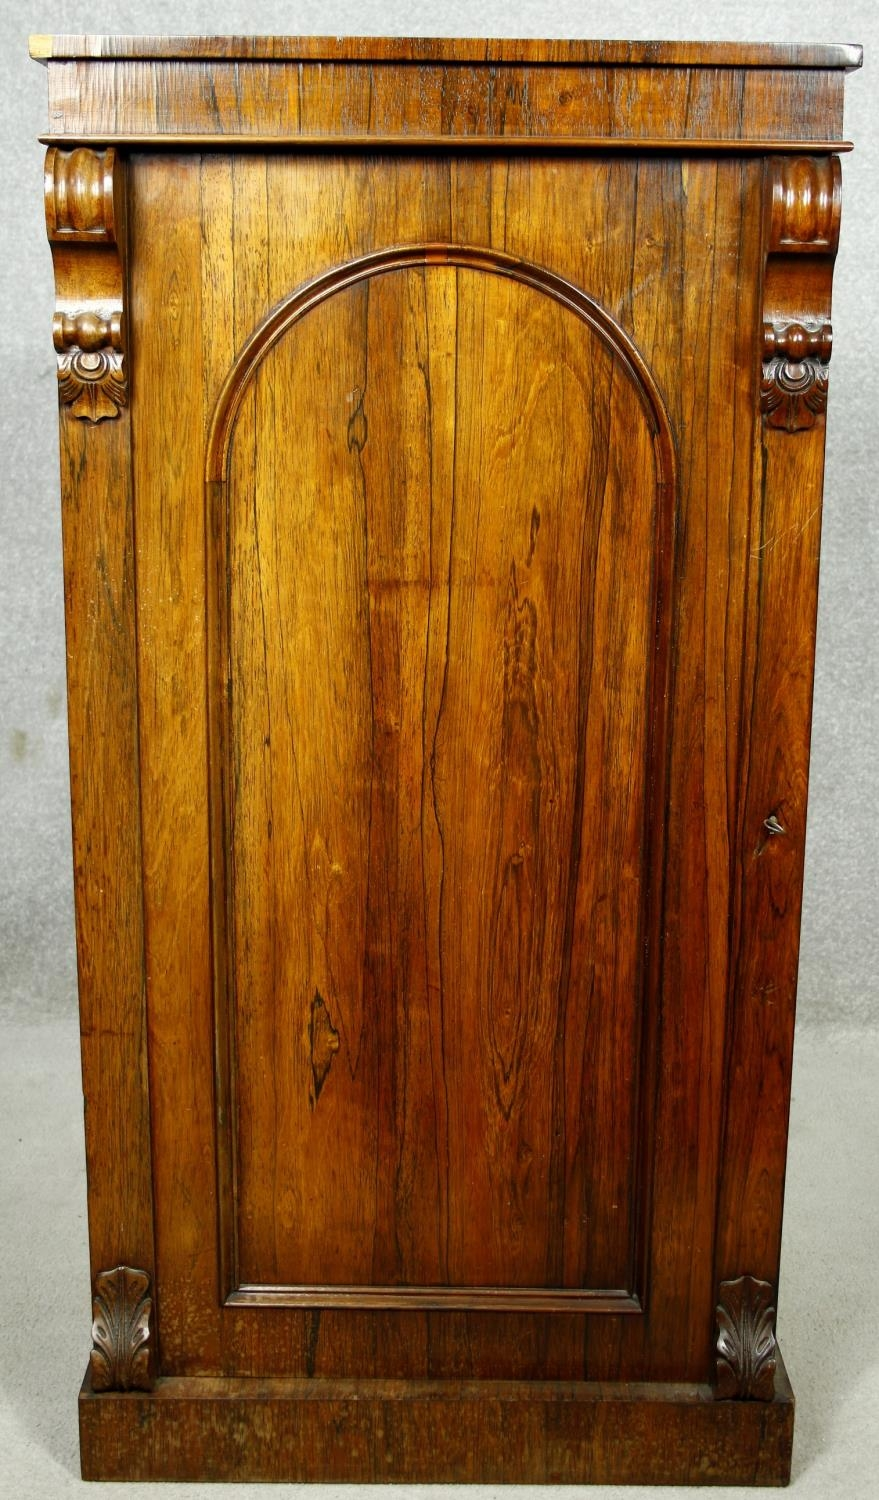 An early Victorian rosewood pier cabinet with arched panel door enclosing shelves on plinth base.